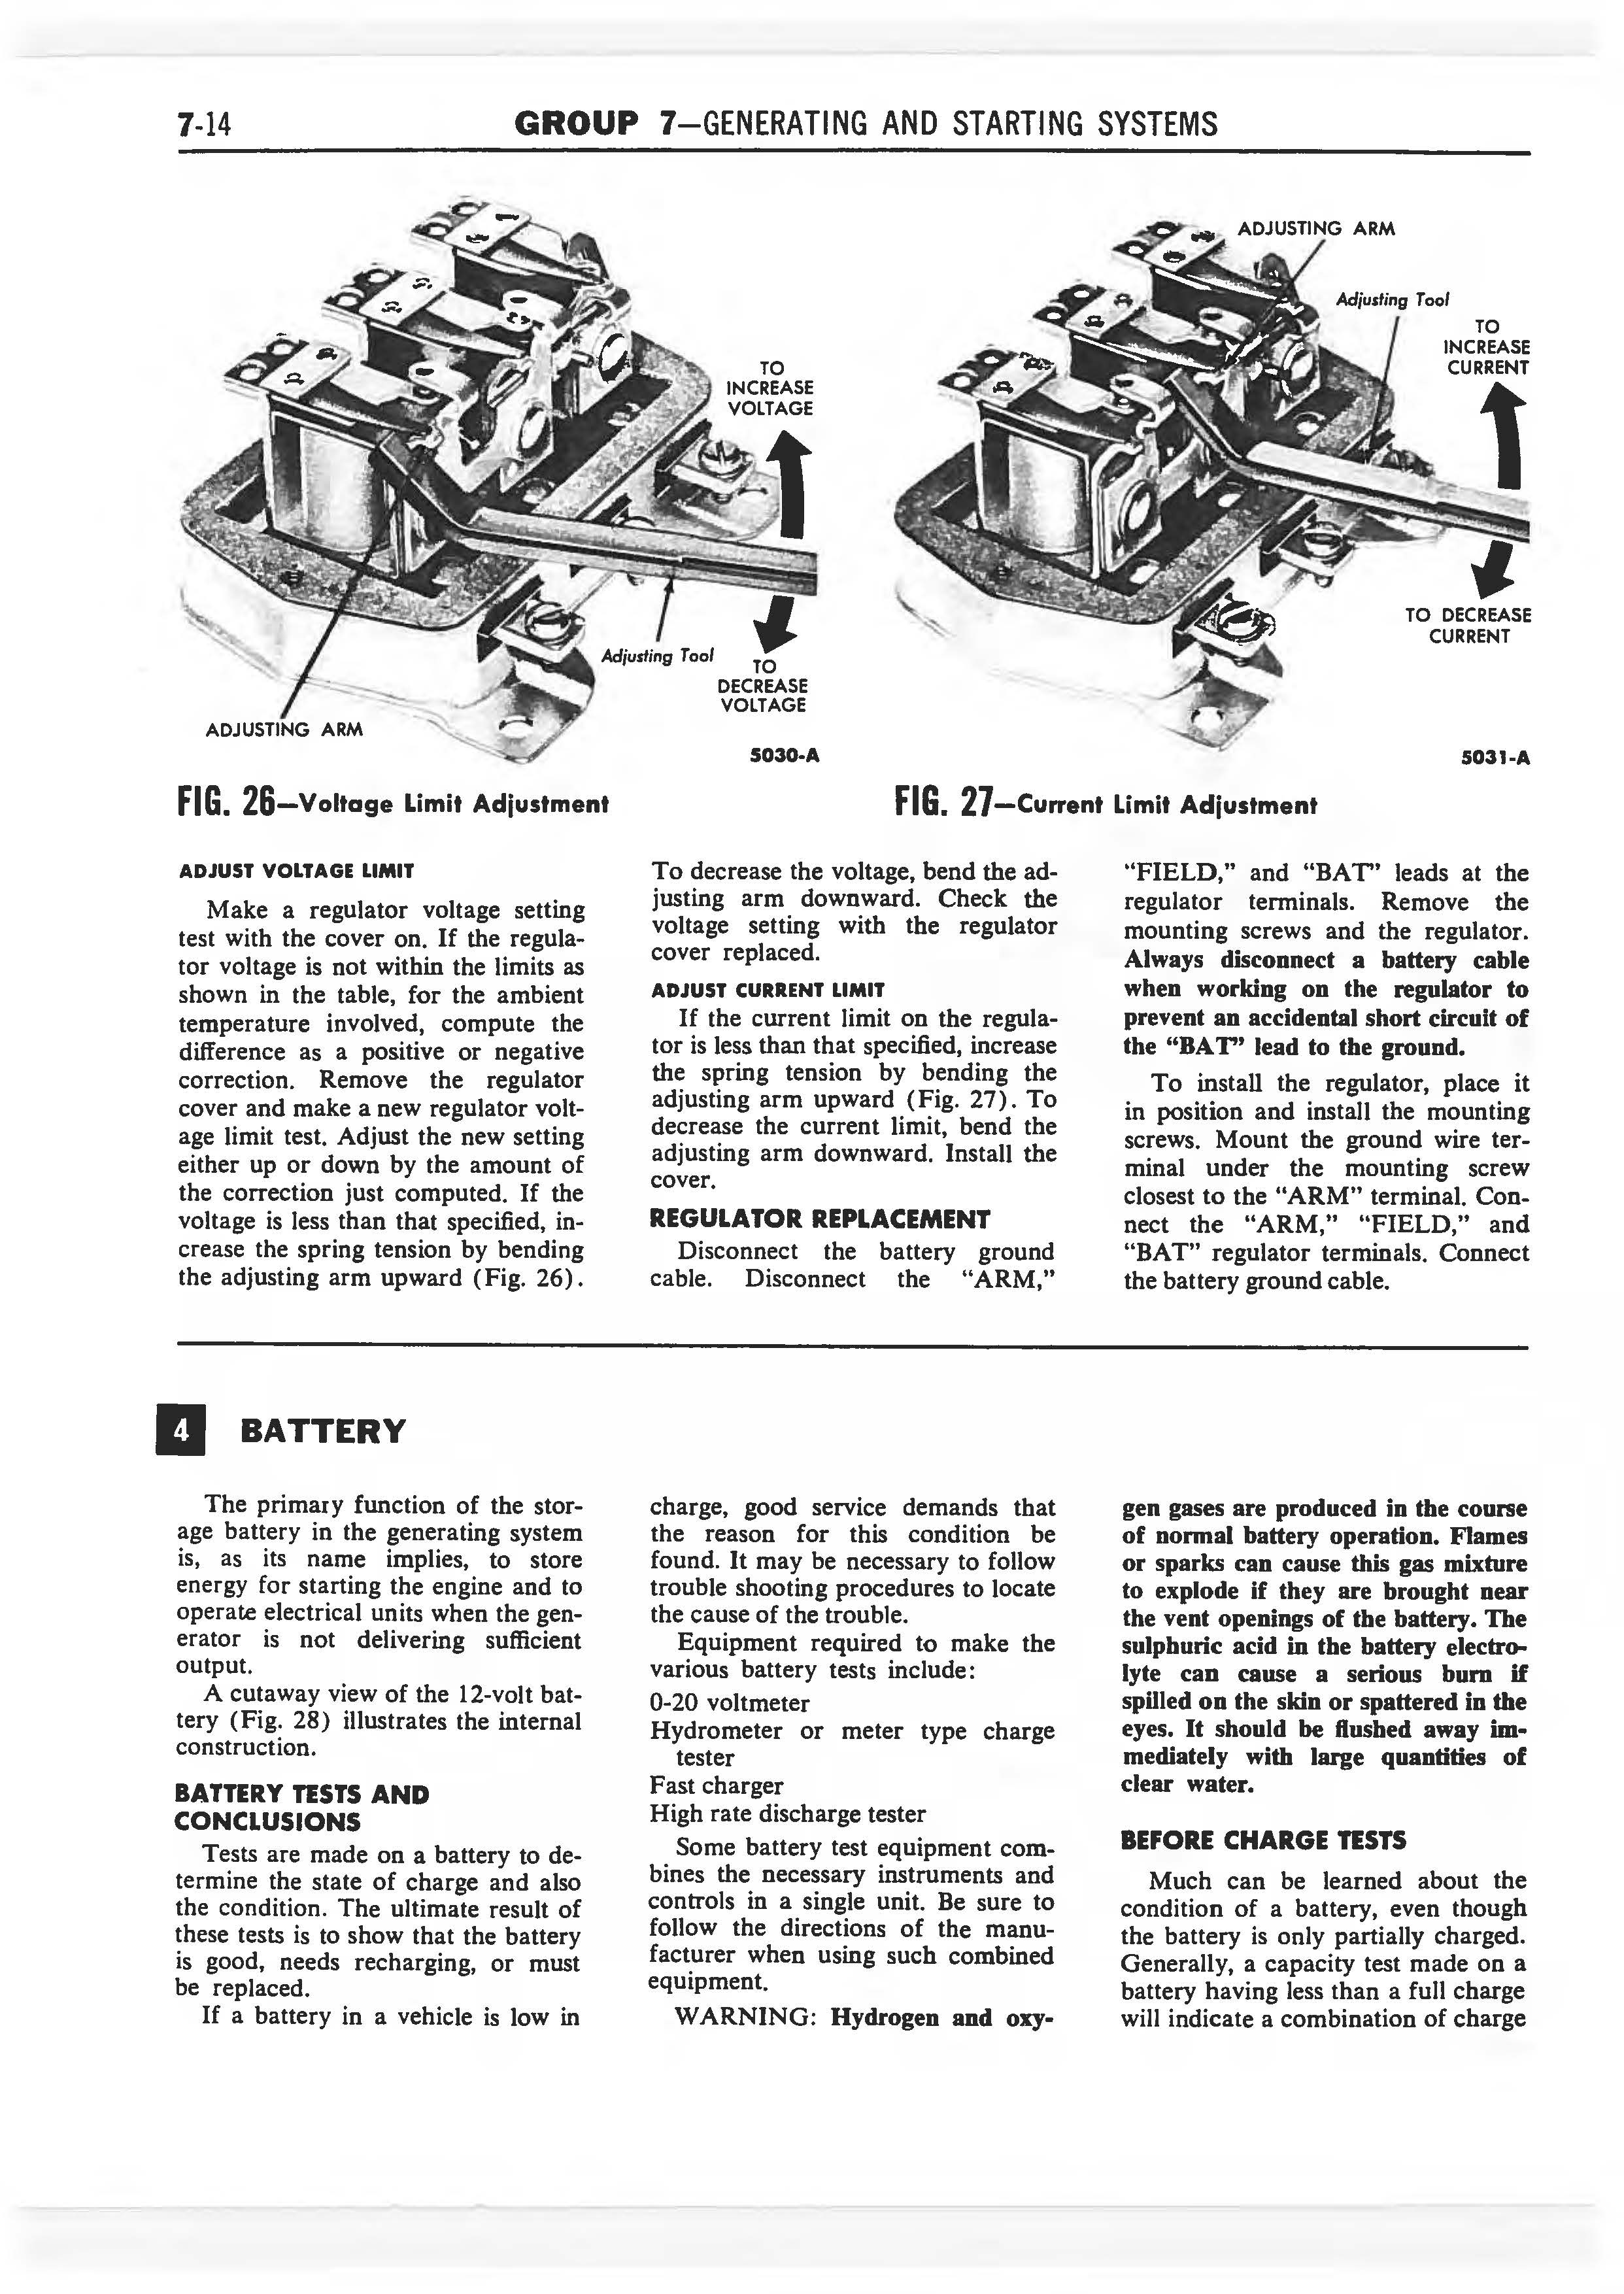 1958 Ford Thunderbird Shop Manual page 252 of 360